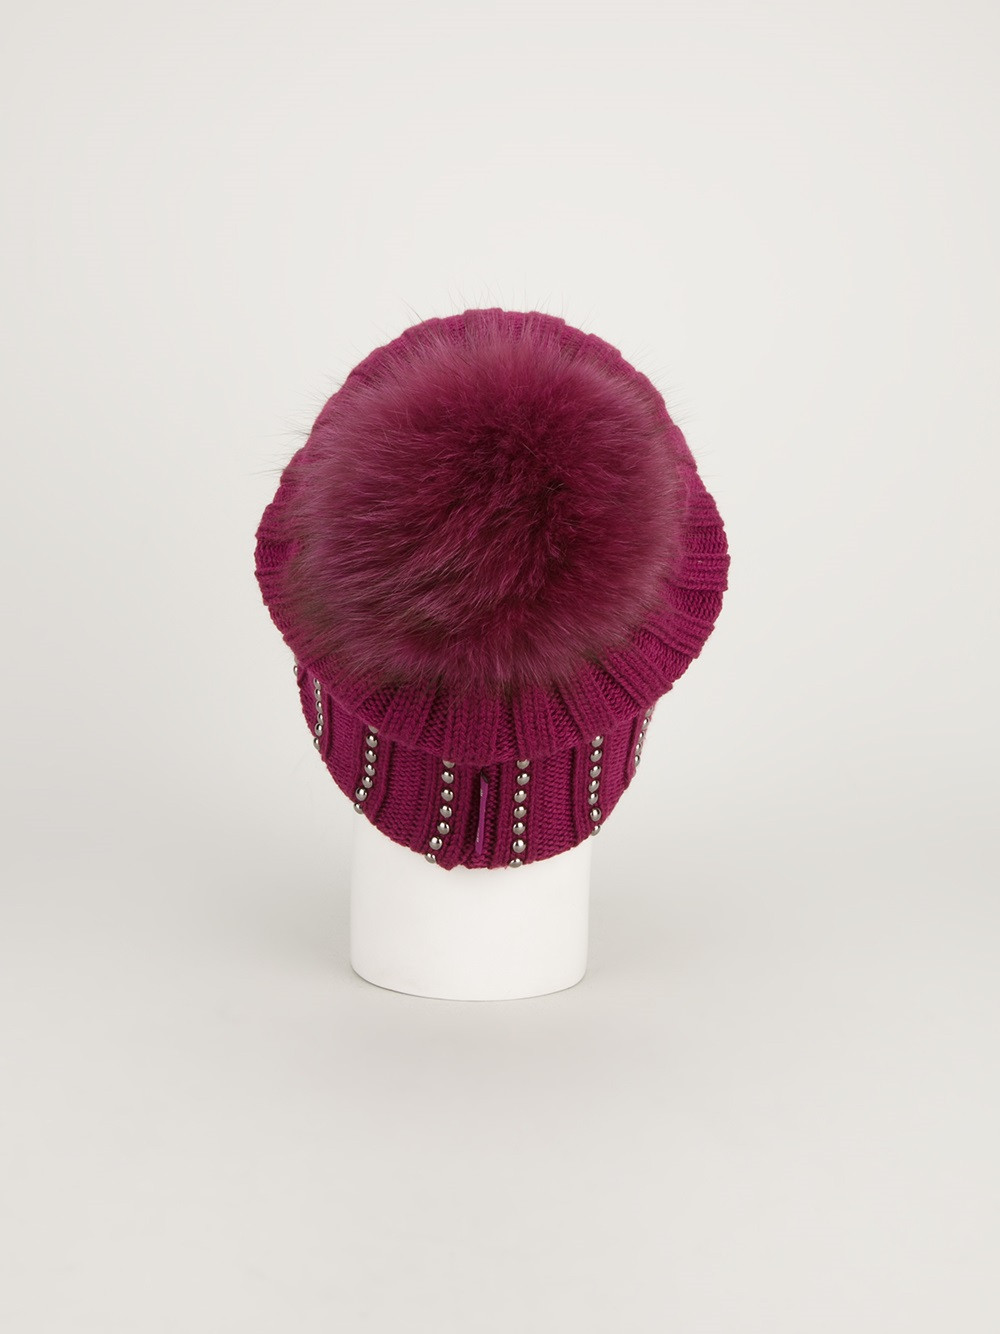 Moncler Pom Beanie Hat in Pink & Purple (Pink) - Lyst